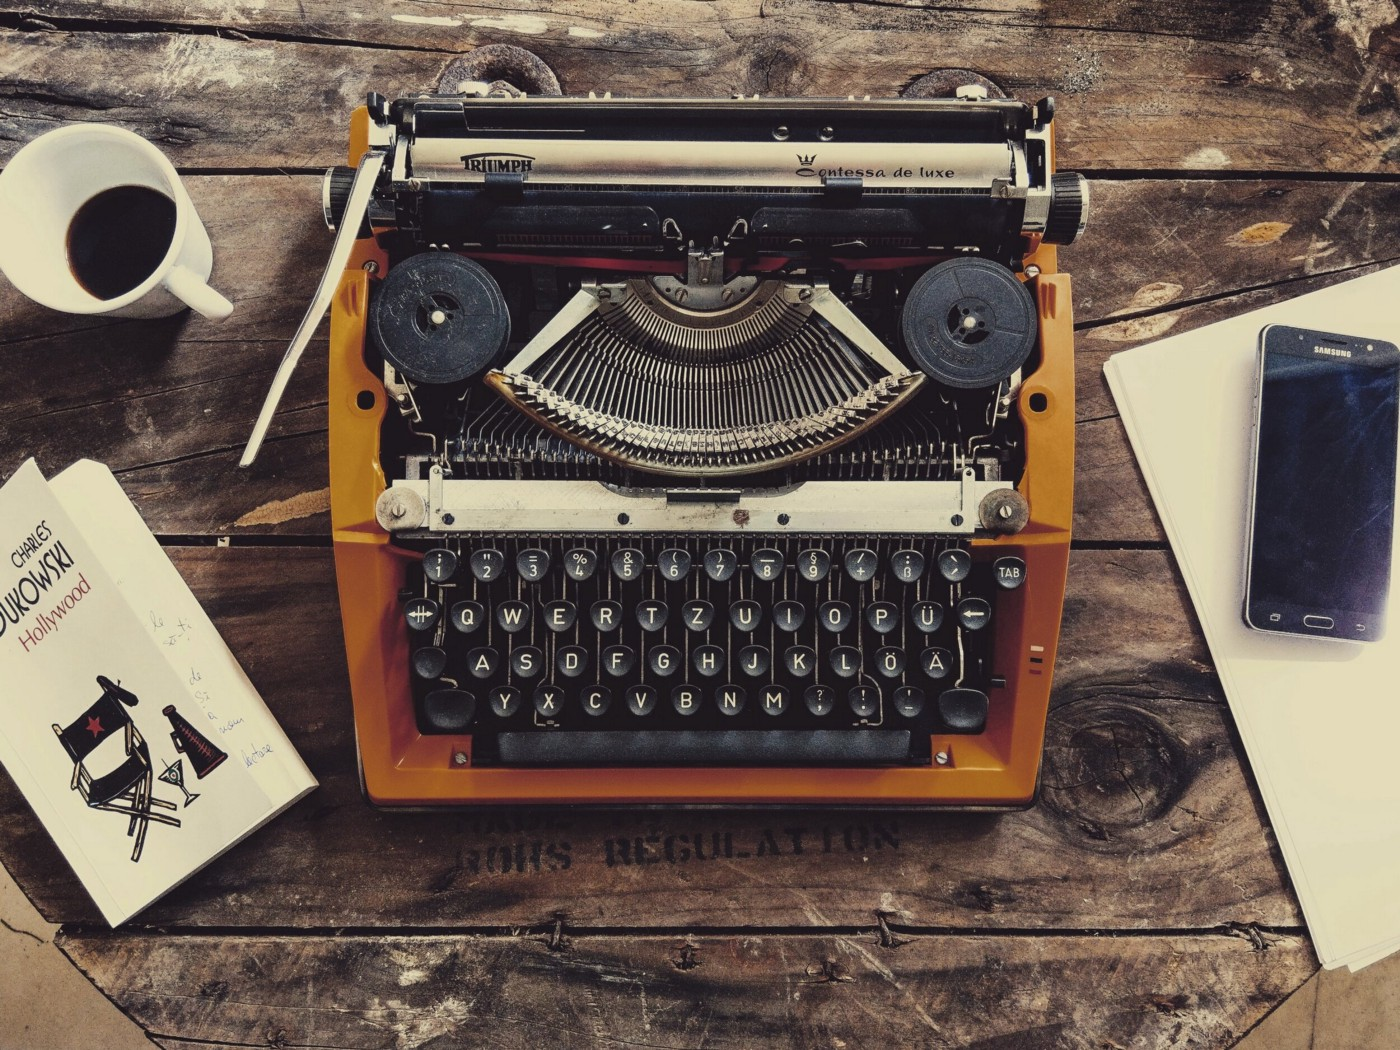 A yellow typewriter on a wooden table with a book, cup of coffee, notebook, and iPhone nearby.